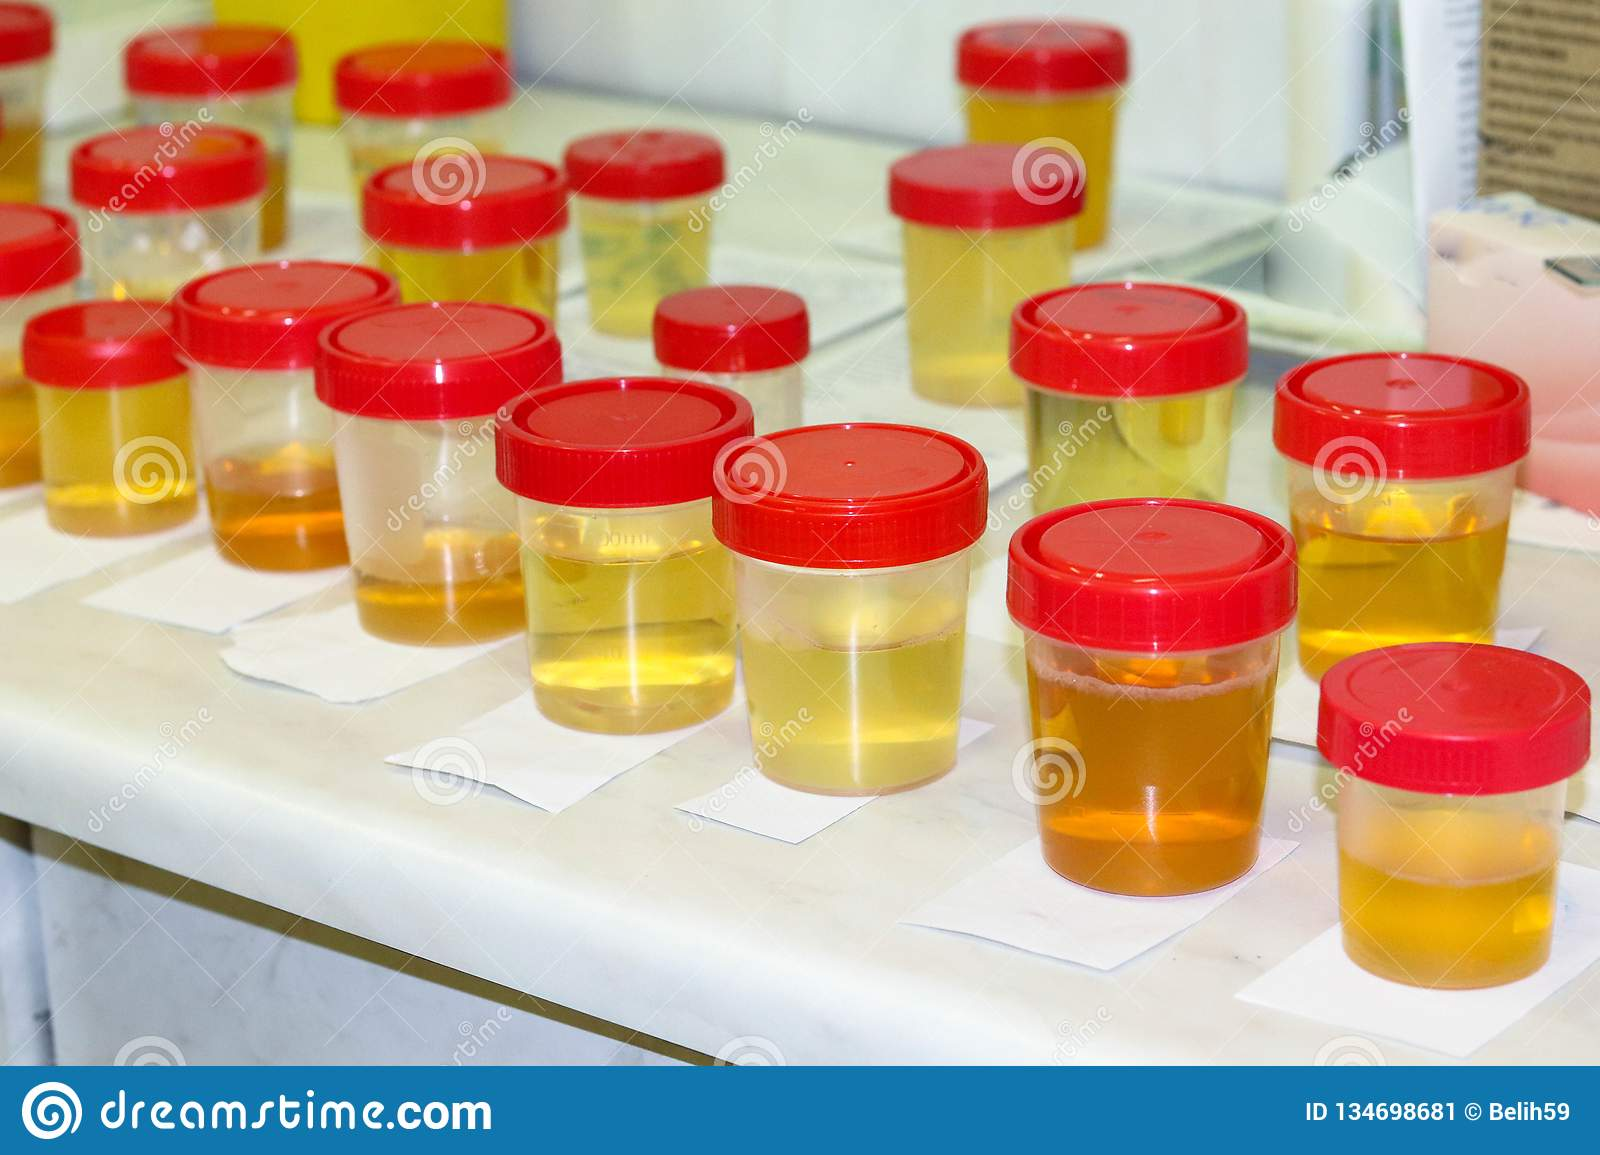 Preparation of urine samples in the laboratory in the hospital for the study. Special test strips for urine examination